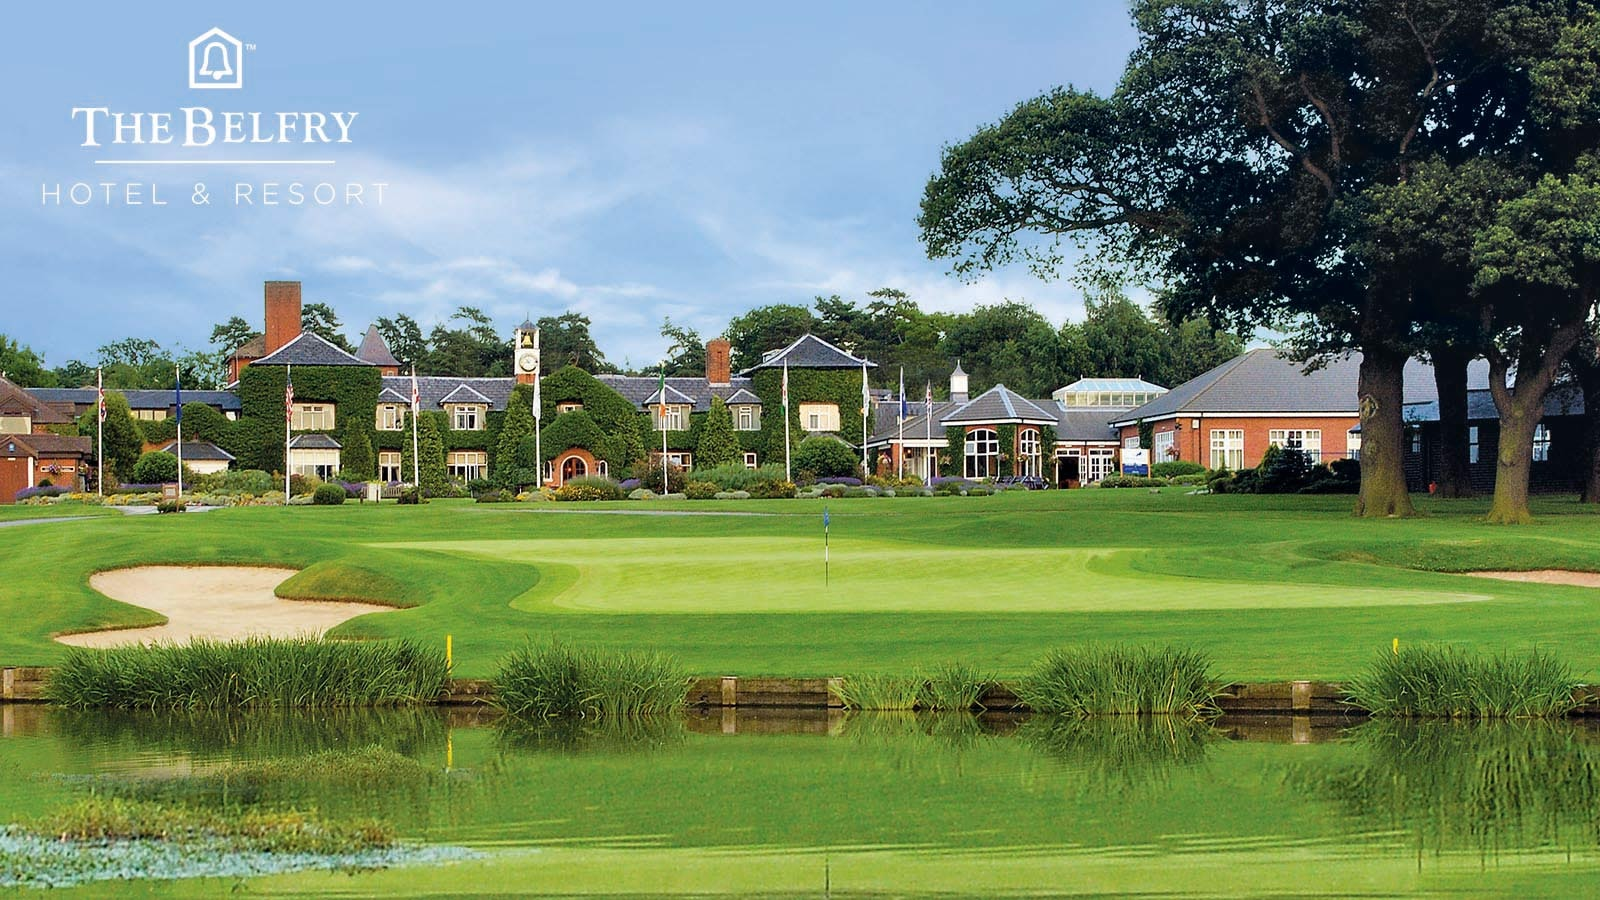 WIN A luxury stay at the Belfry Hotel & Resort sweepstakes